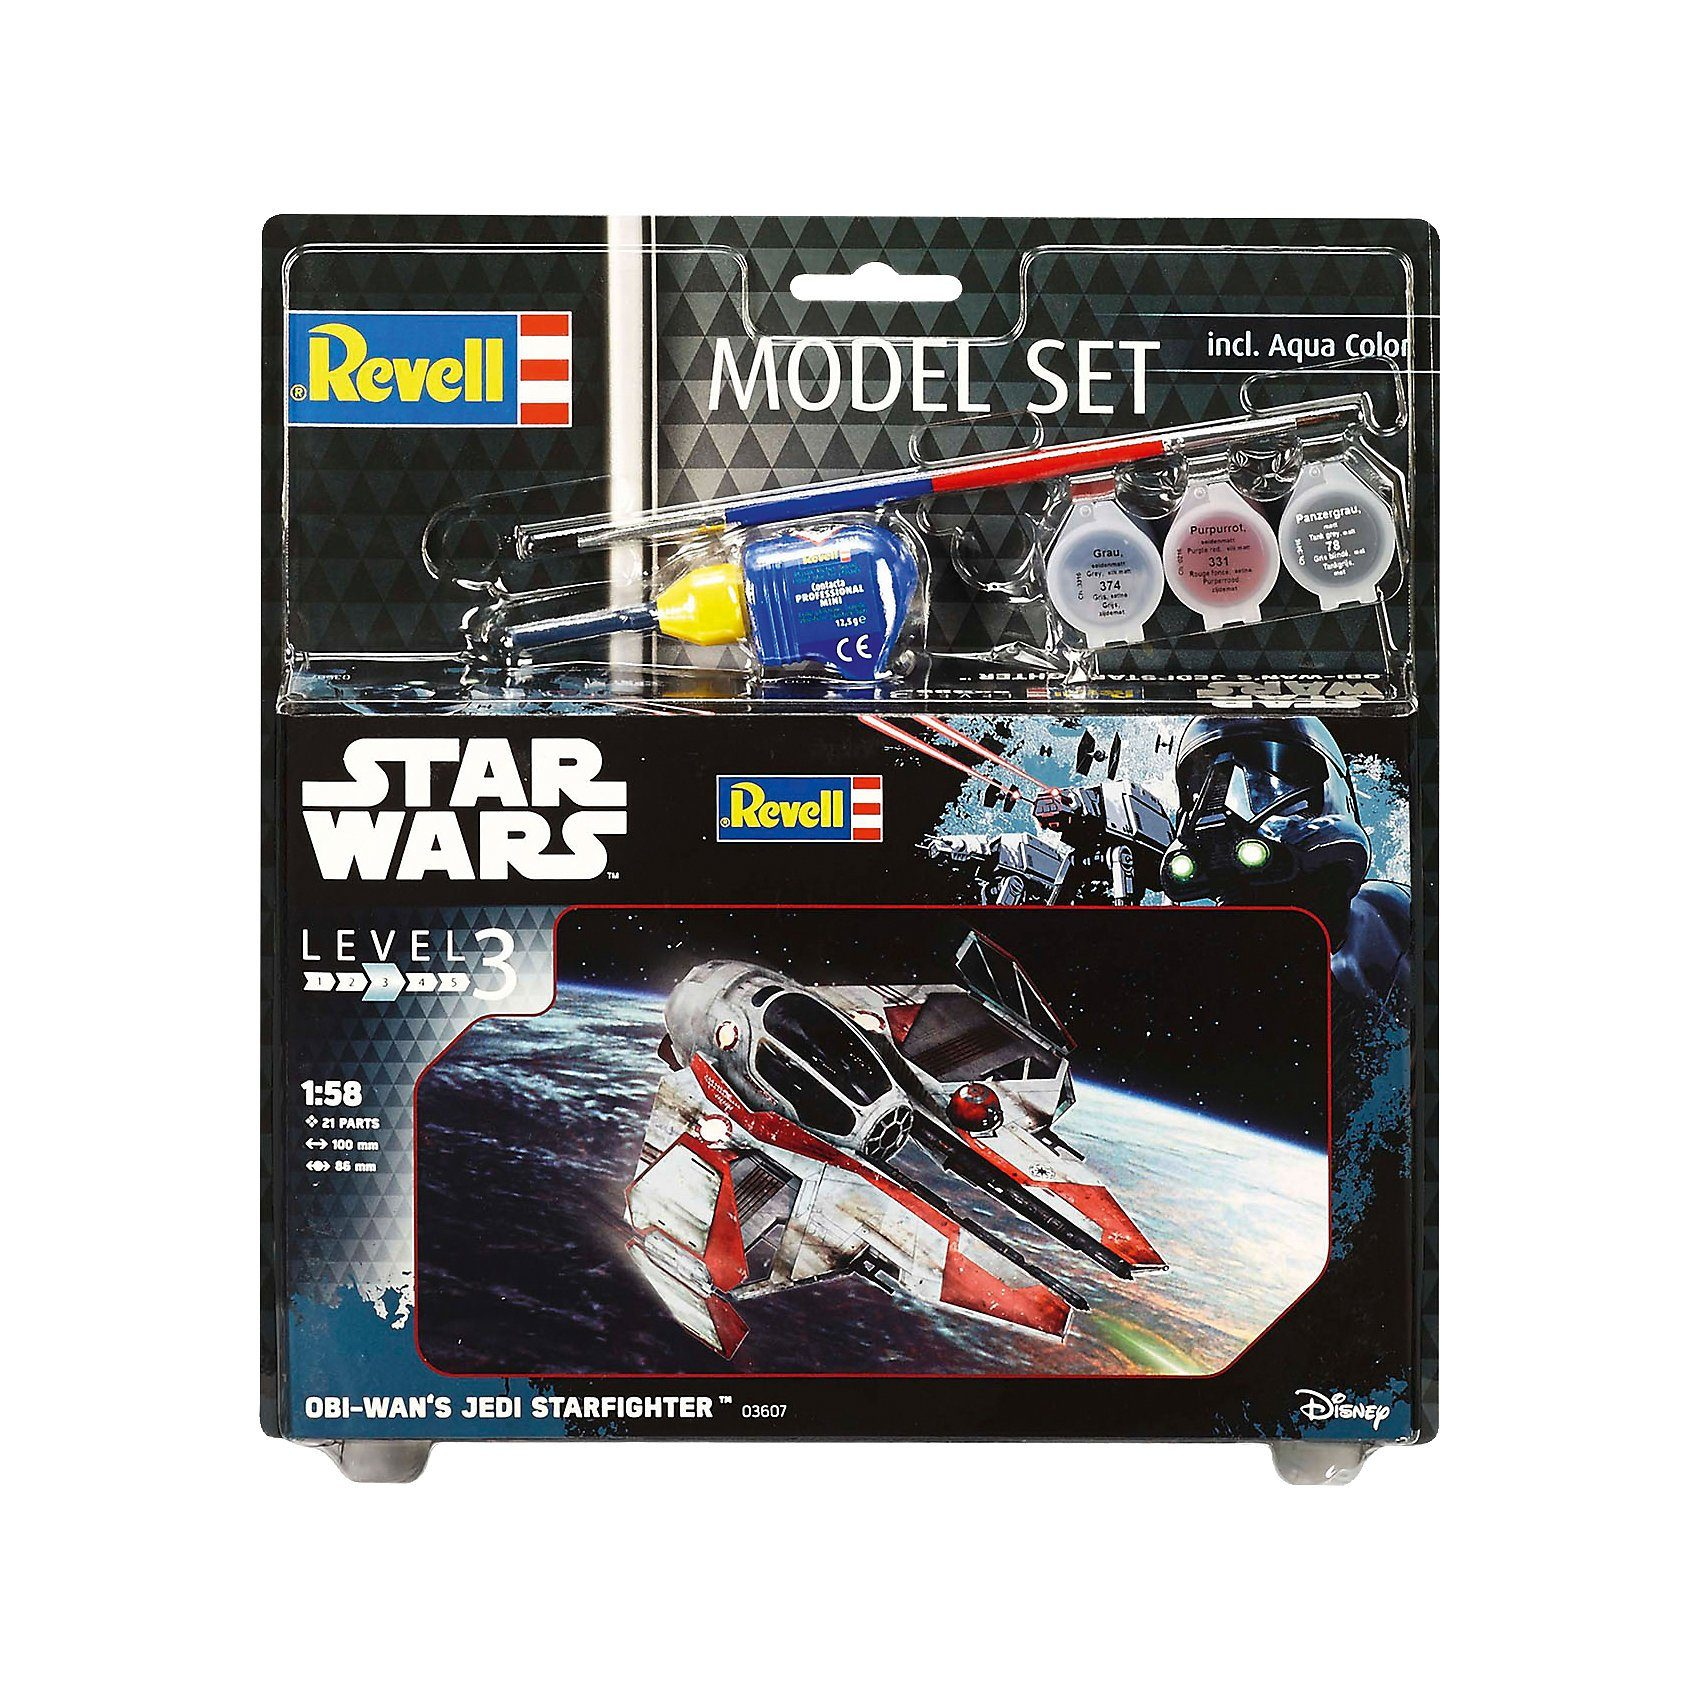 Revell Modellbausatz - Model Set Star Wars Obi Wan's Jedi Starfight